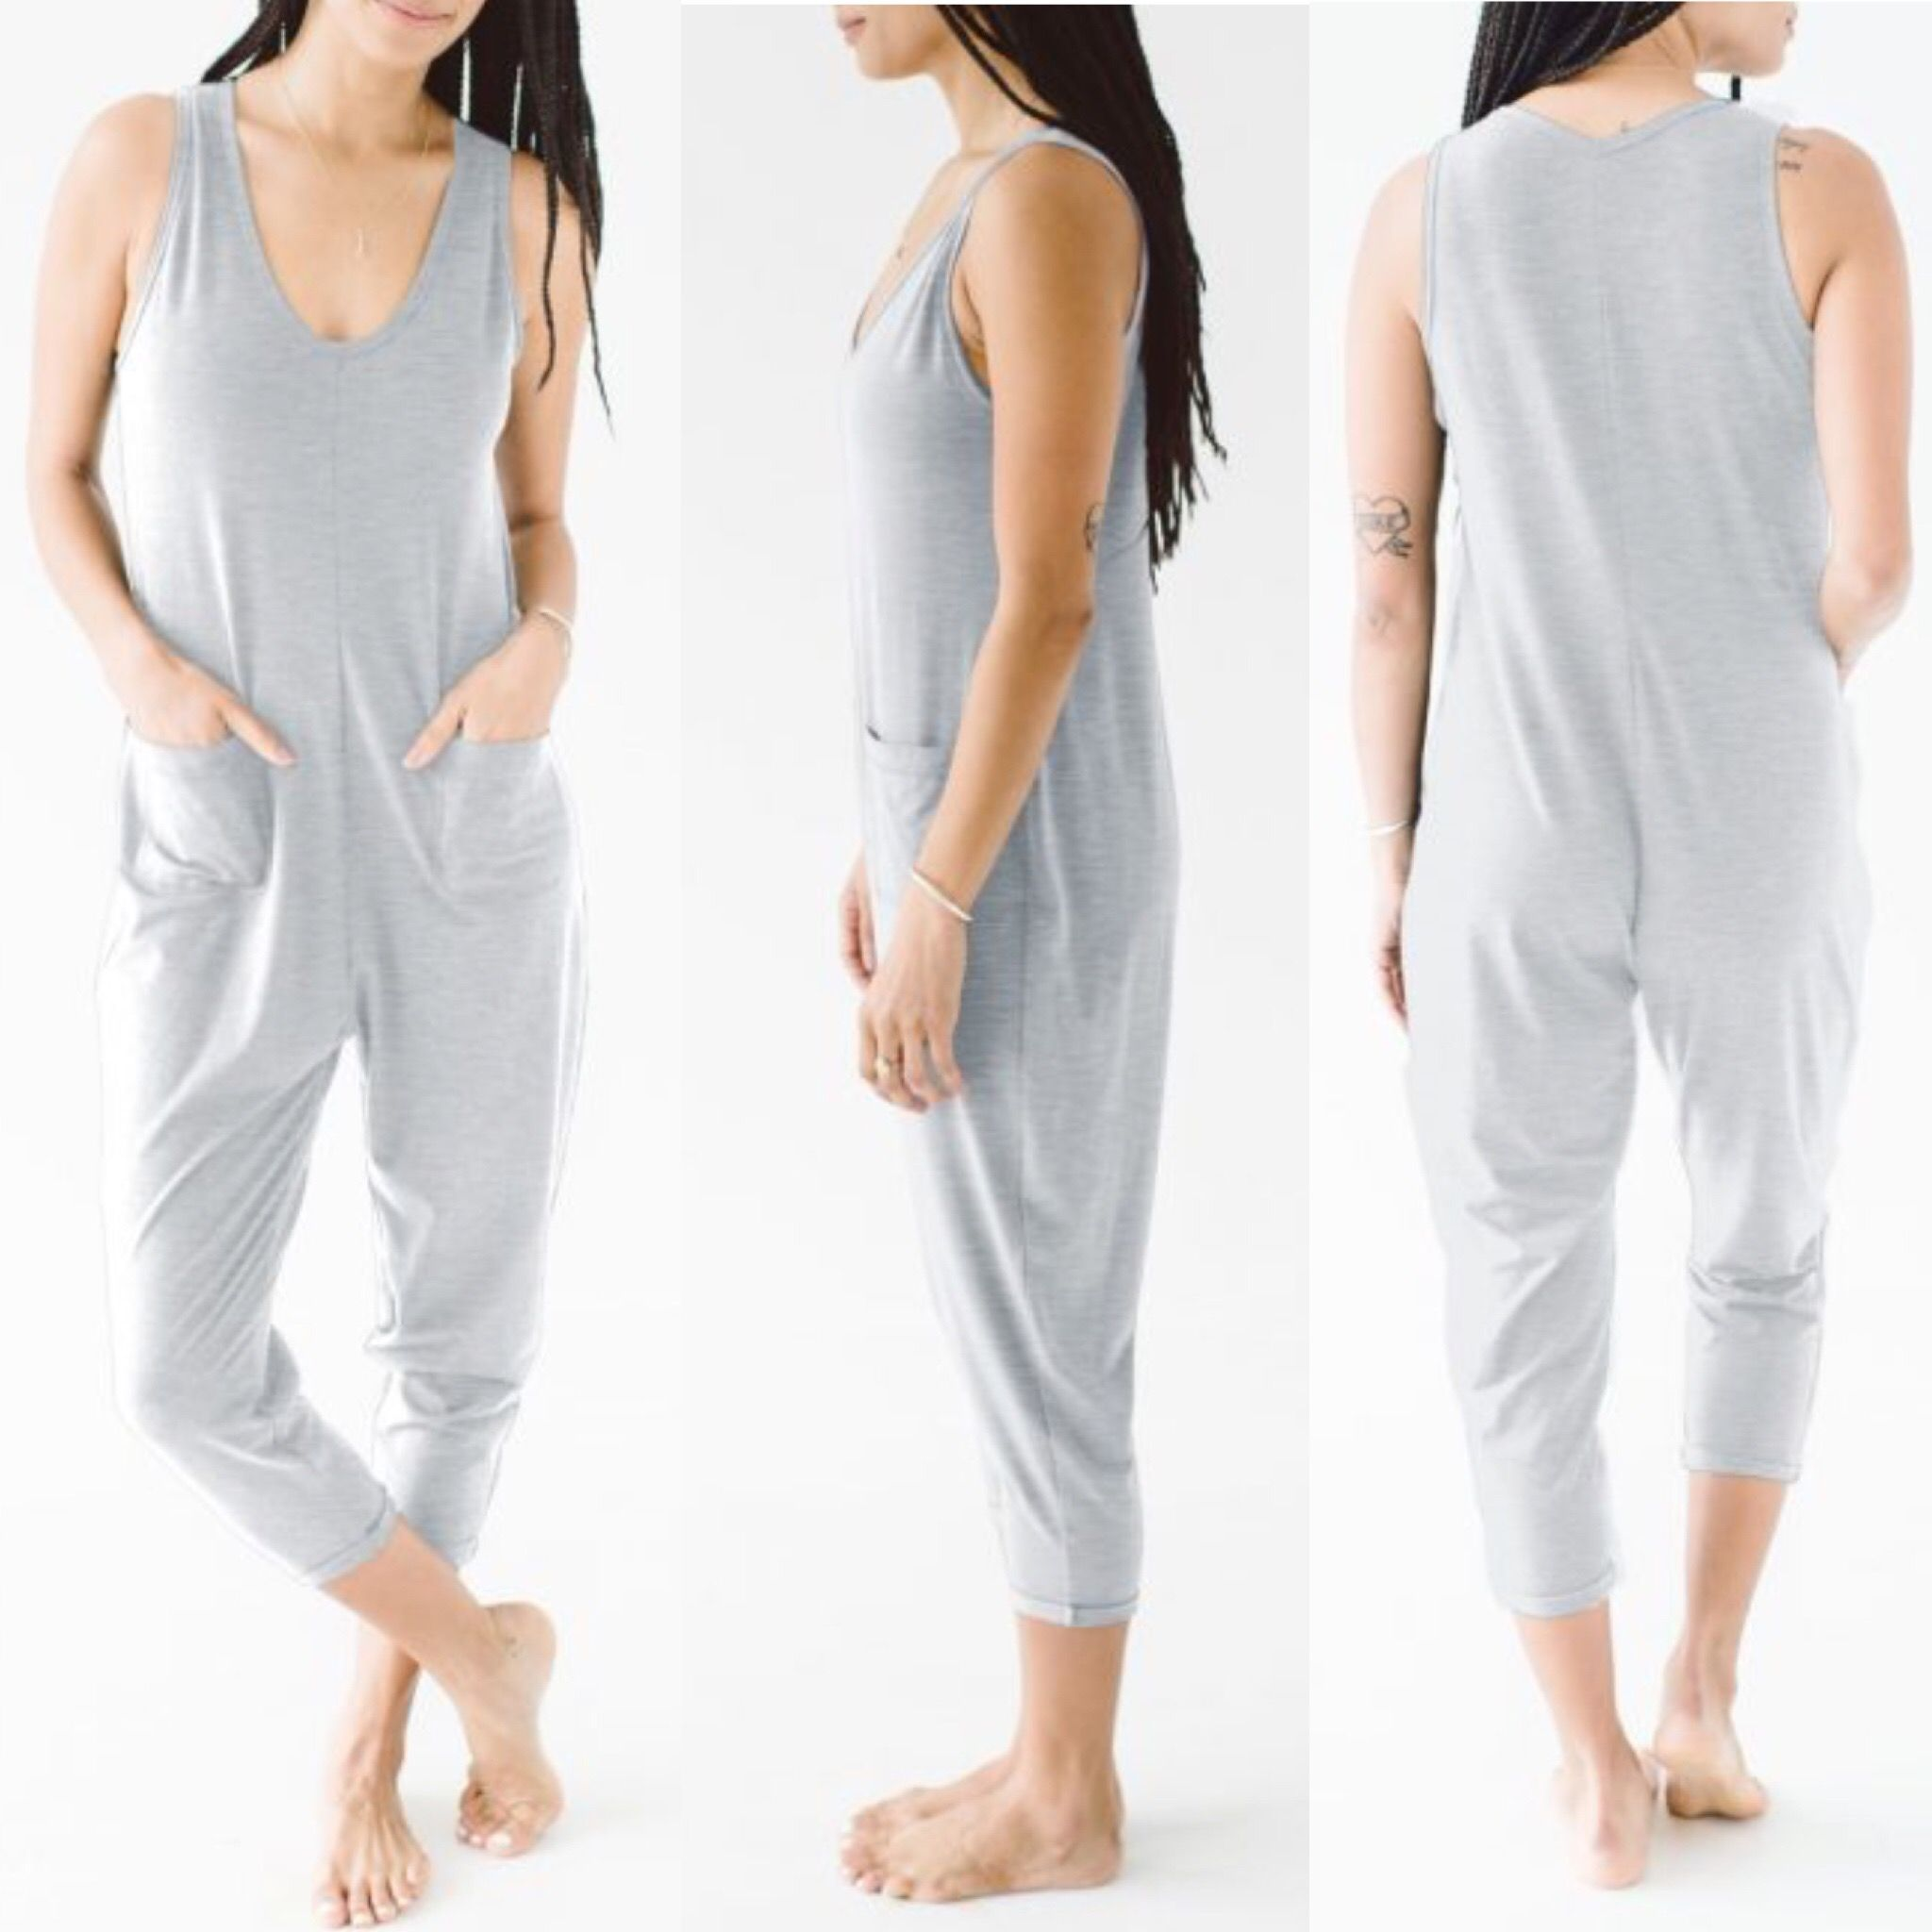 54dfaf62361e The Saturday Romper by Smash and Tess in Jillian grey-I need this in my  life!